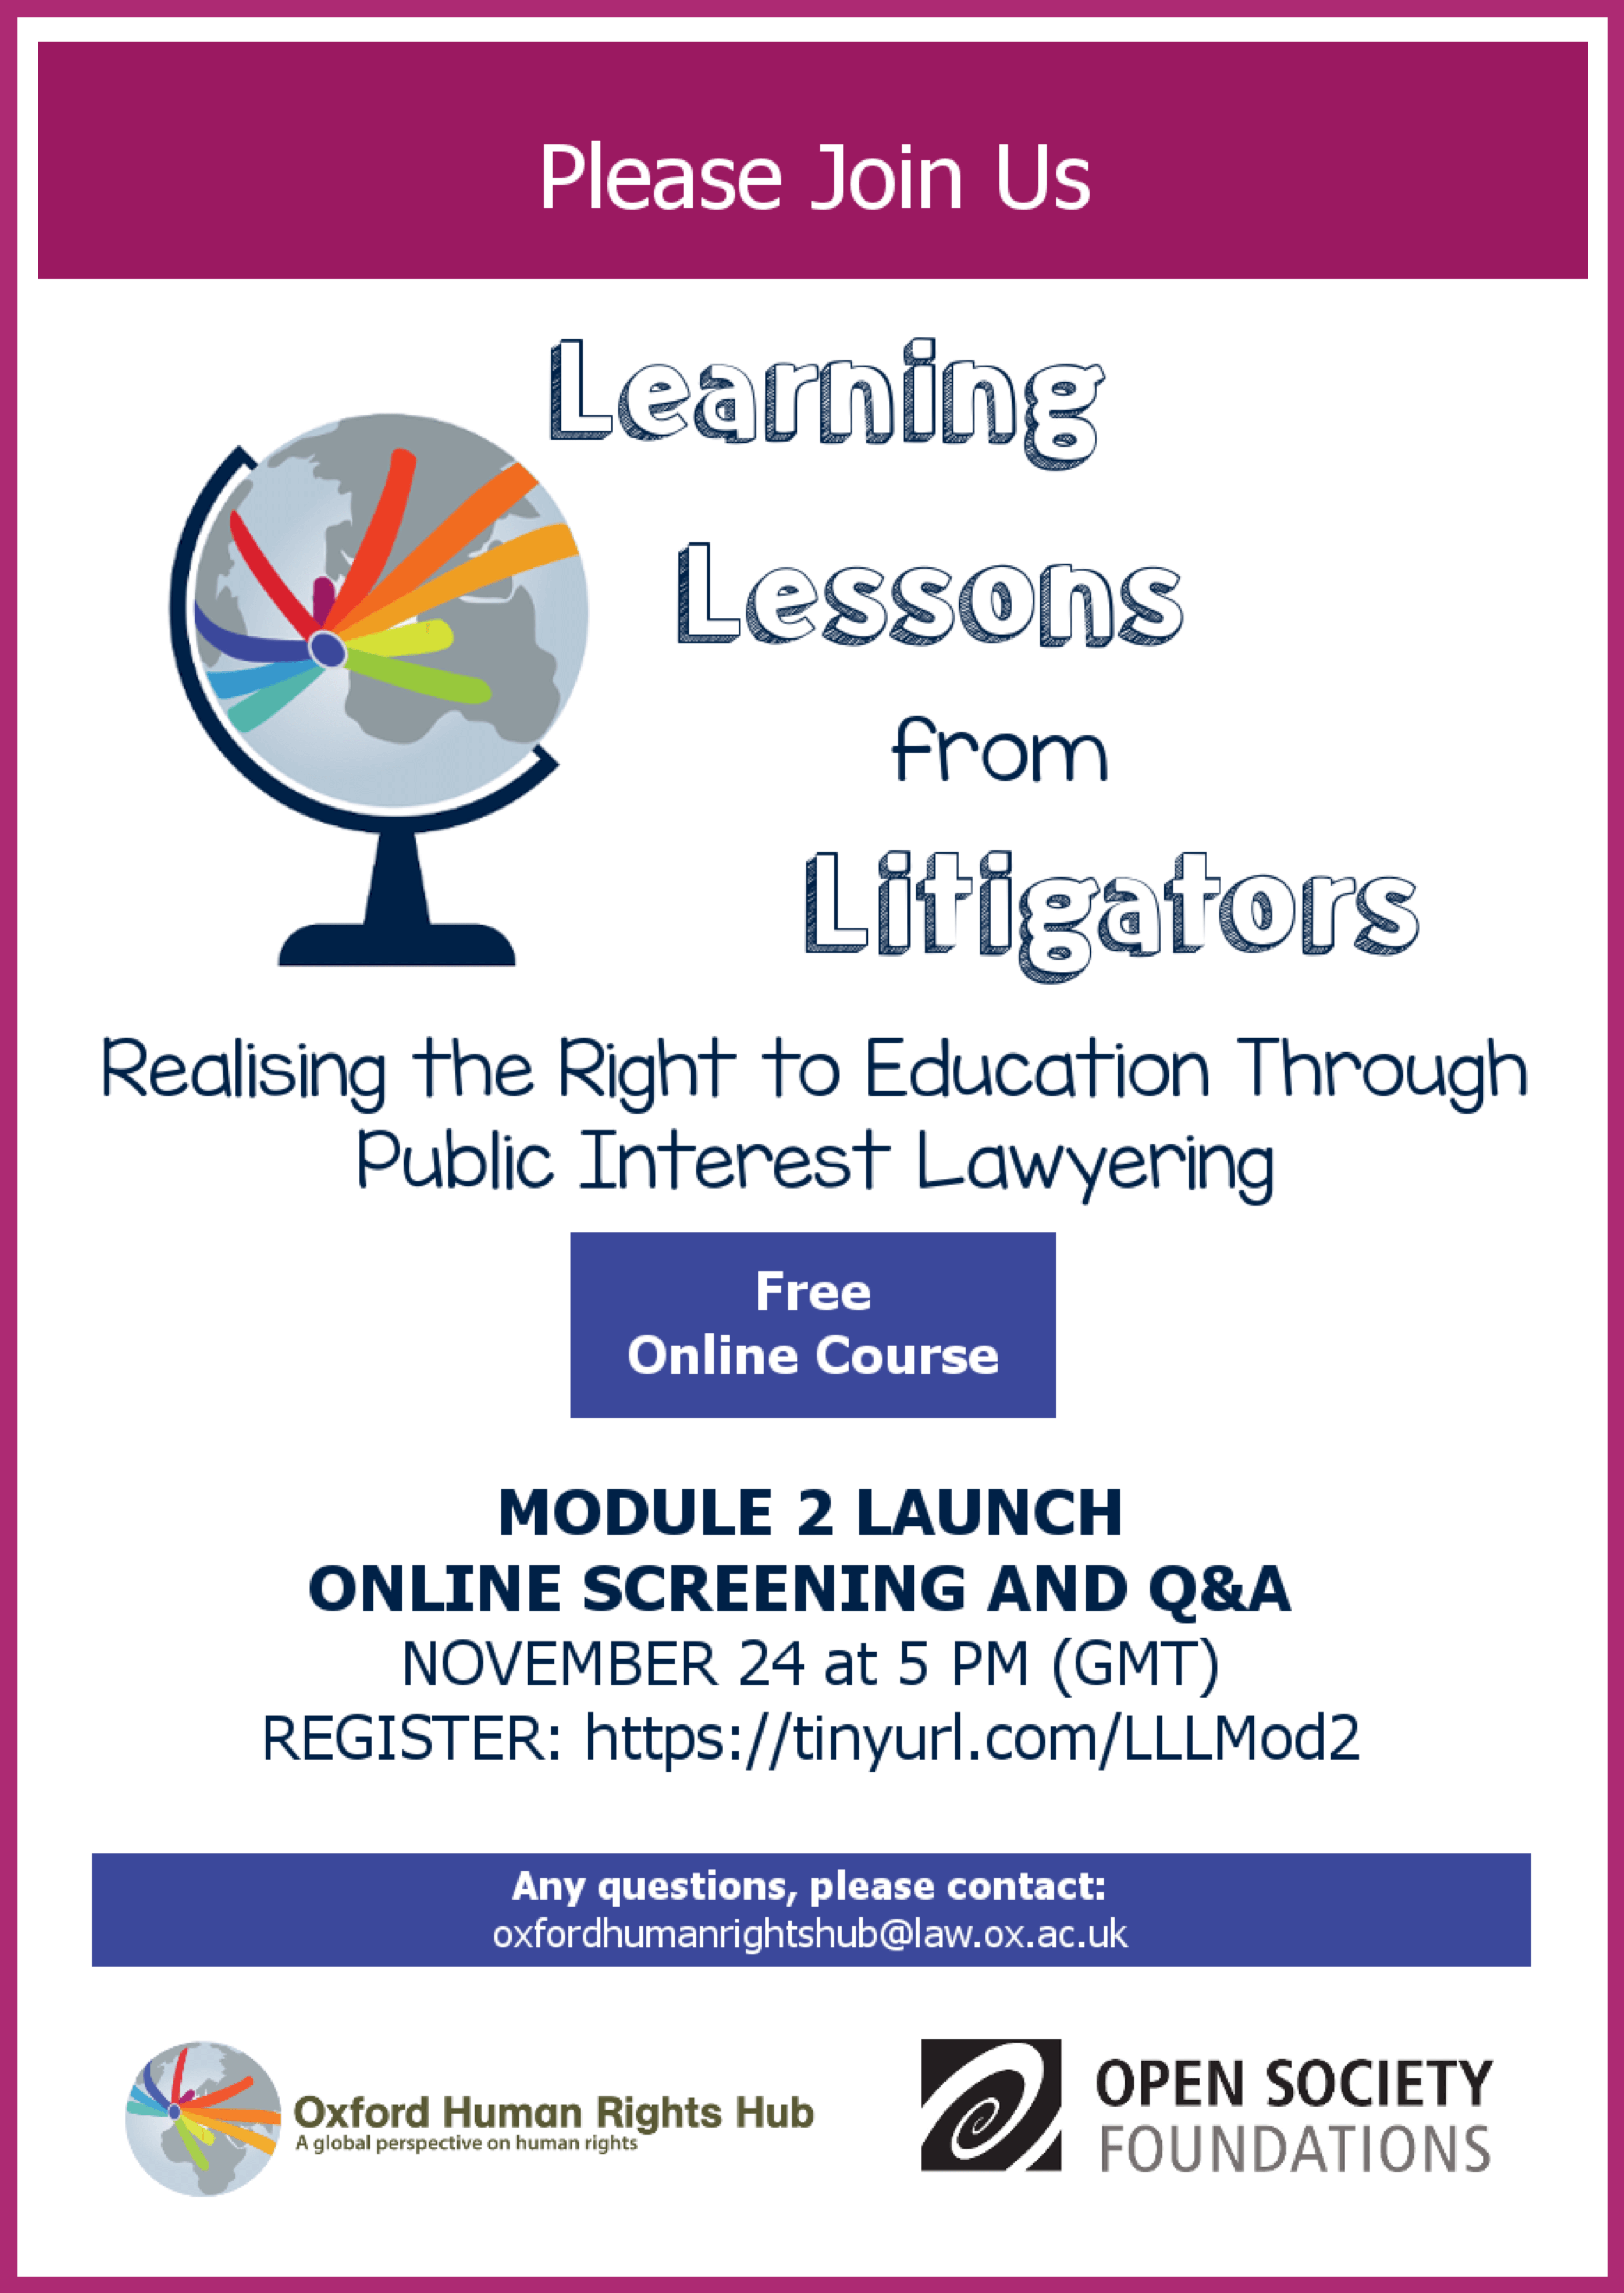 Sign Up for Module 2 of Learning Lessons from Litigators!